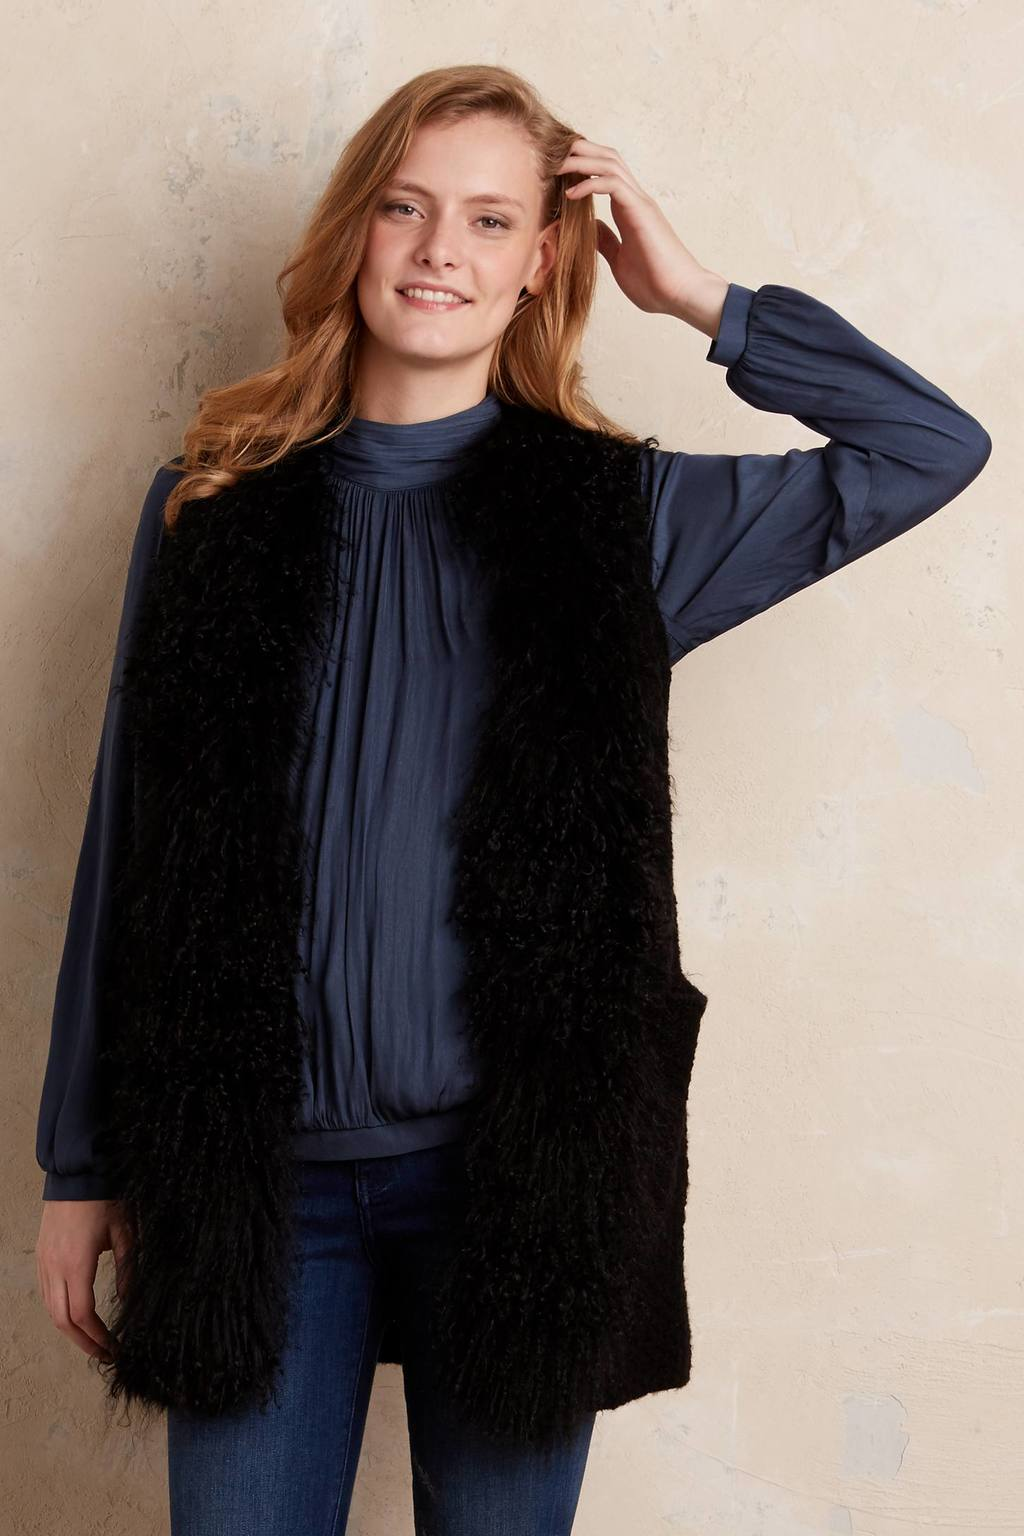 Portrero Fur Trim Cardi - pattern: plain; sleeve style: sleeveless; length: below the bottom; neckline: collarless open; style: open front; predominant colour: black; occasions: casual; fibres: fur - 100%; fit: slim fit; sleeve length: sleeveless; texture group: knits/crochet; pattern type: fabric; season: a/w 2015; wardrobe: basic